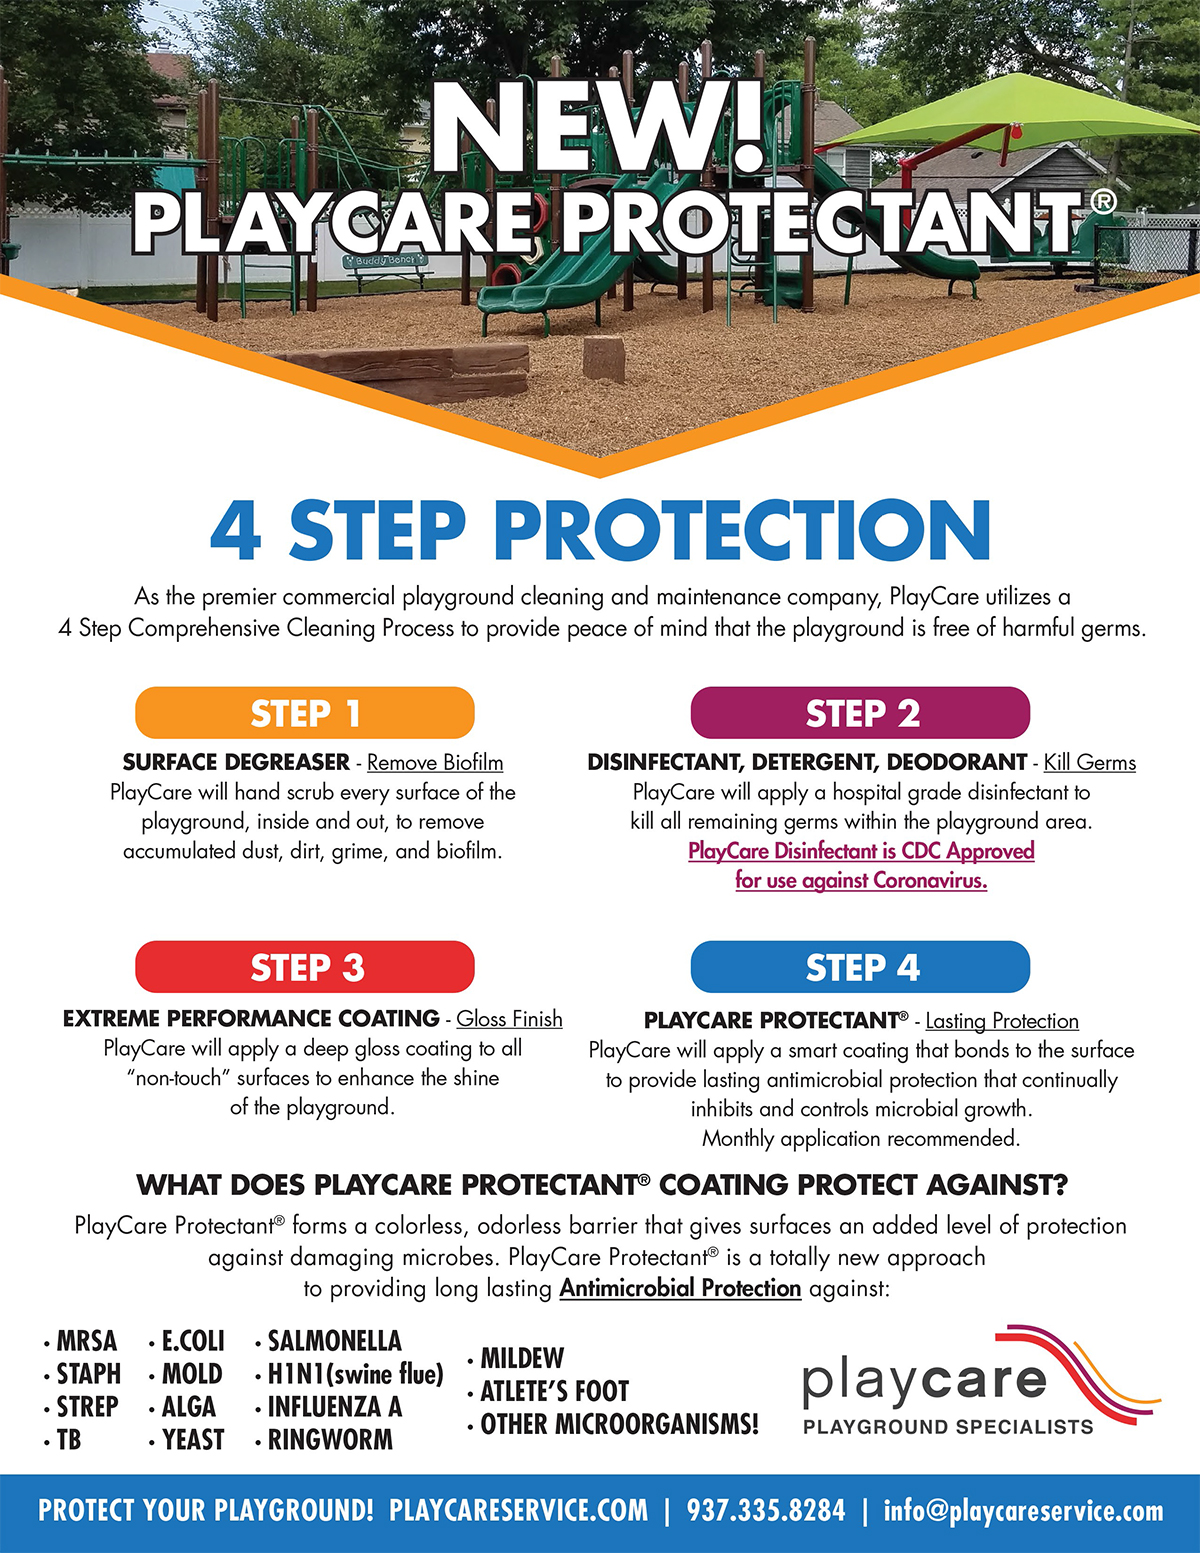 PlayCare Protectant™